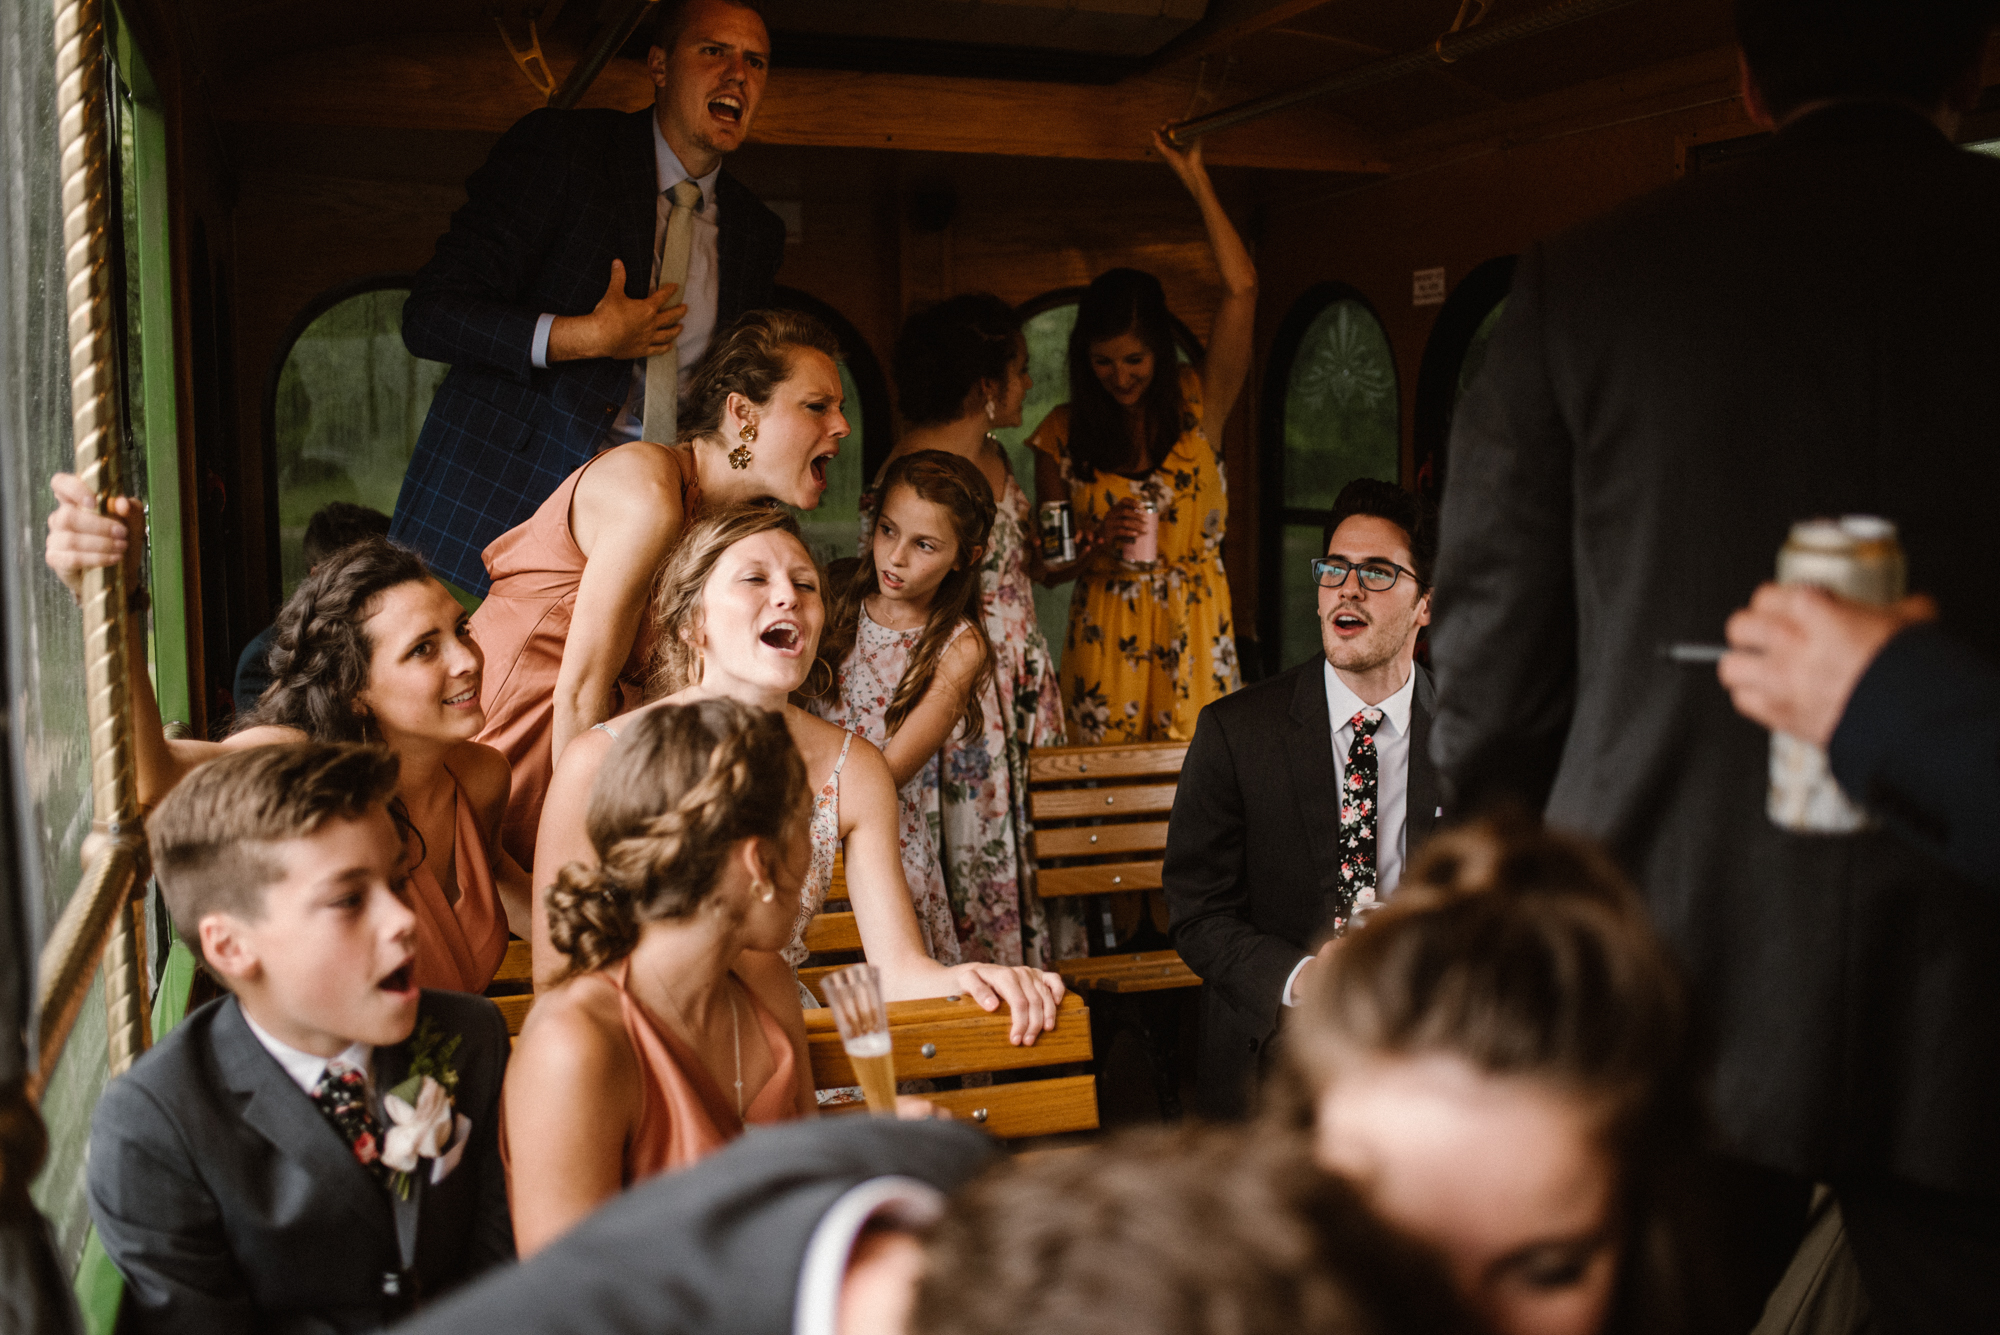 Mairi and Jude - Rainy Backyard Wedding - Intimate Wedding - Fun Reception Photos - Chicago Wedding Photographer - Catholic Wedding - White Sails Creative - Virginia Backyard Wedding Photographer_34.jpg